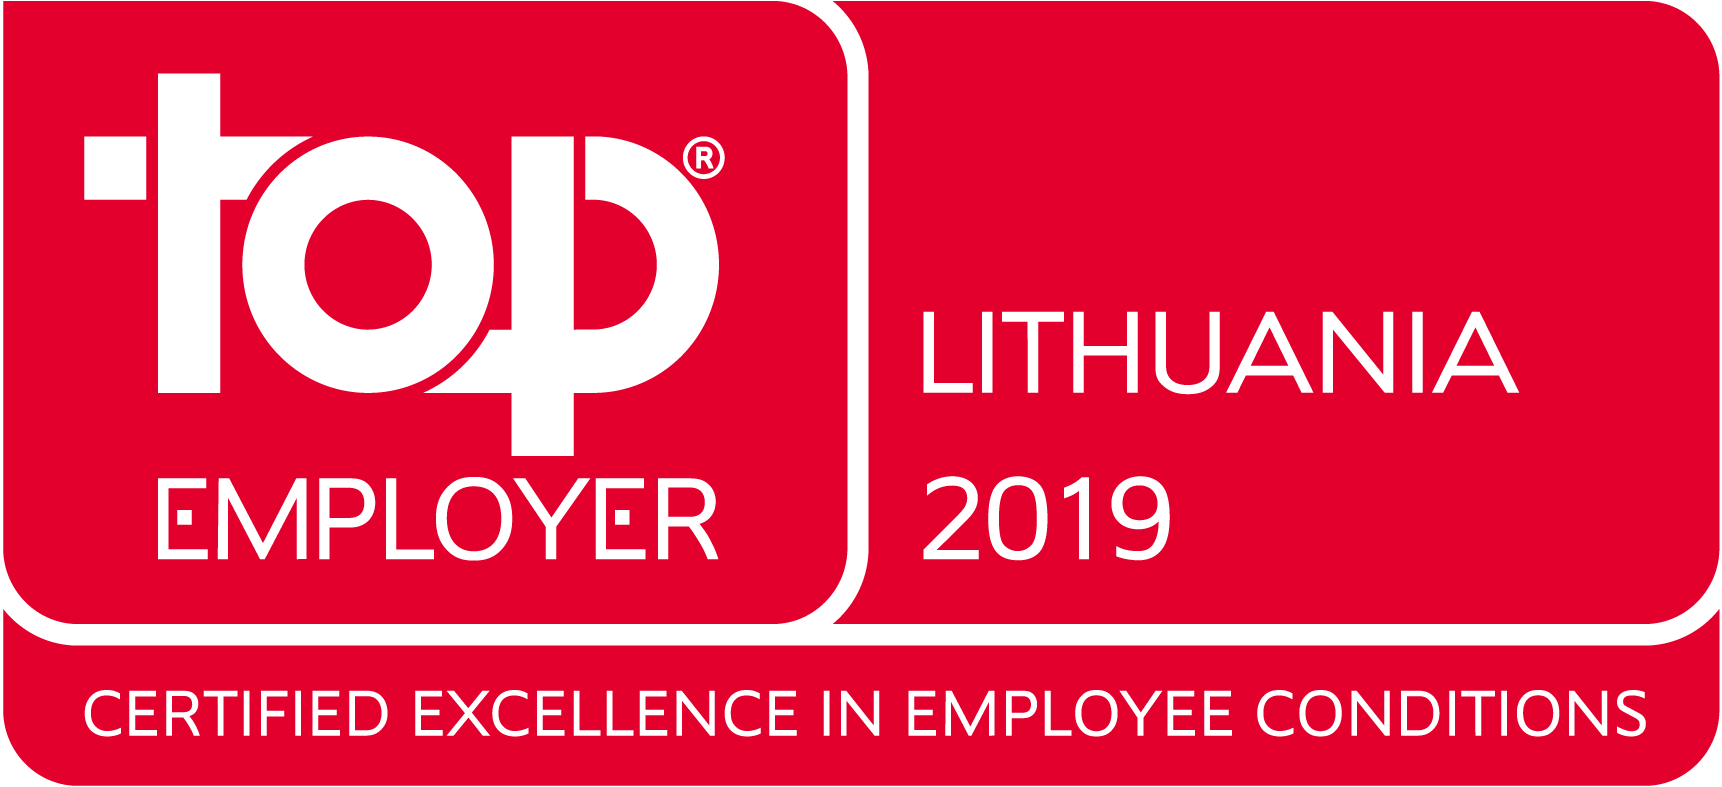 Top_Employer_Lithuania_English_2019